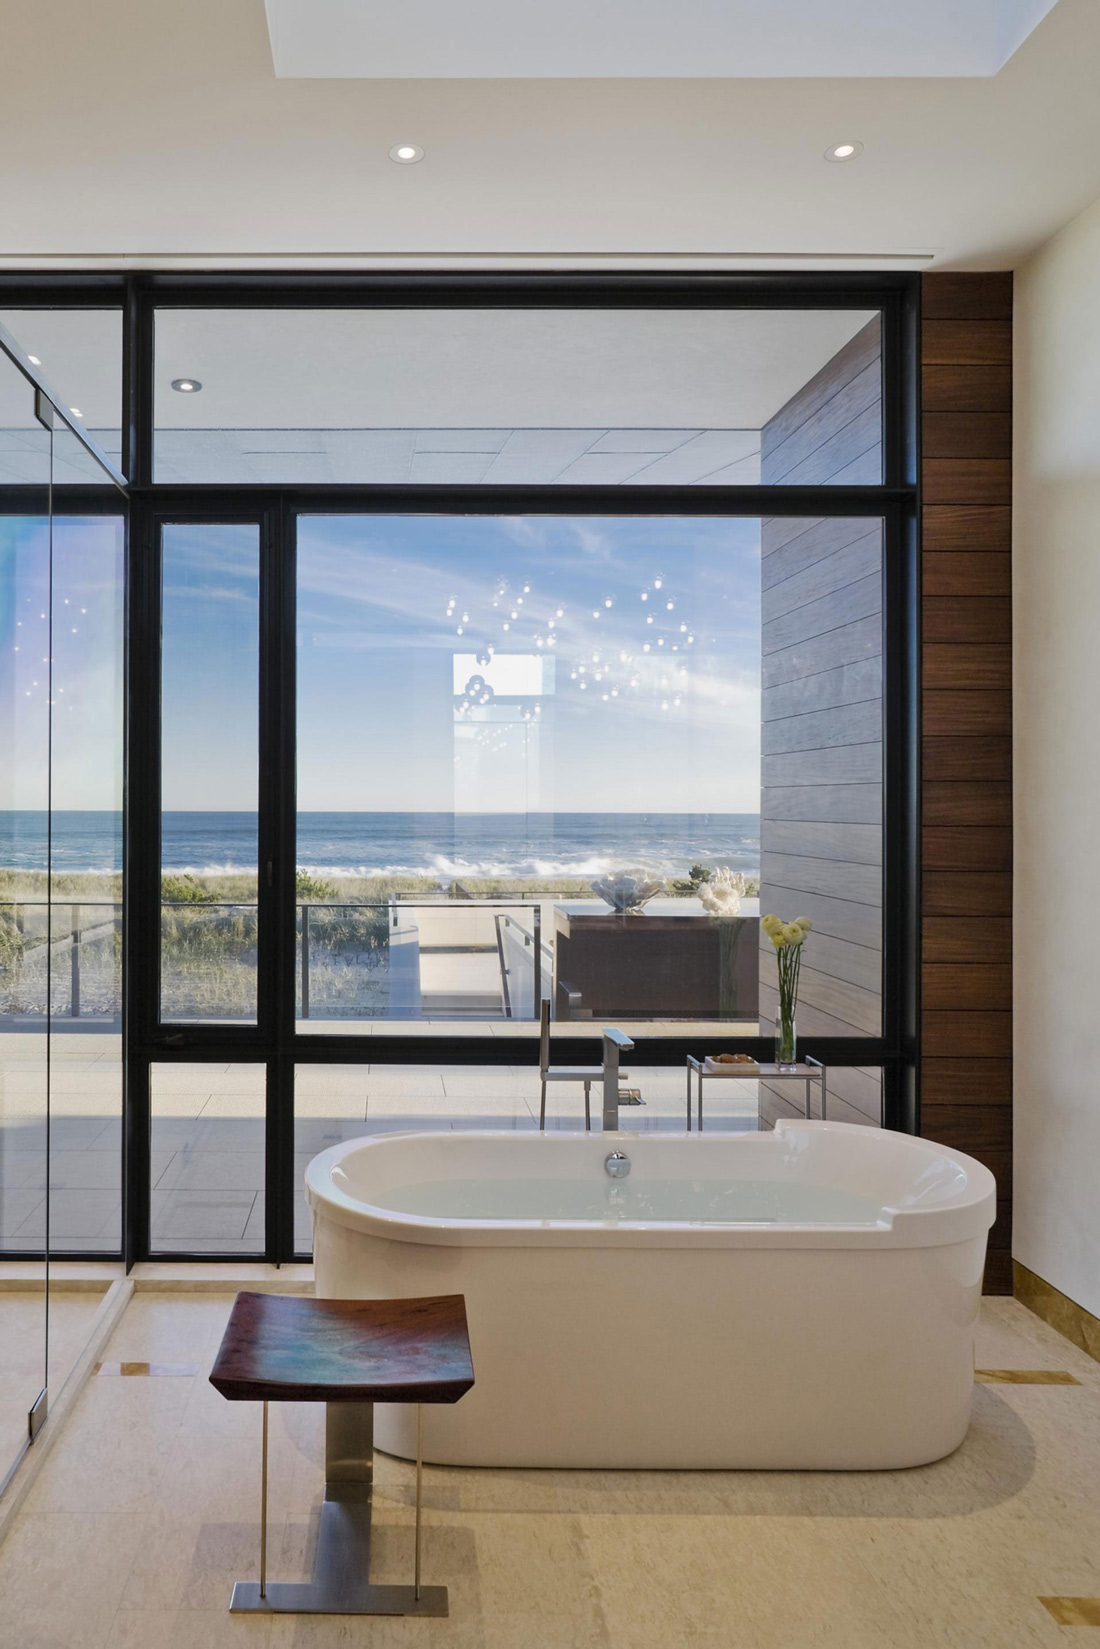 Bathroom, Tub, Floor-to-Ceiling Windows, Summer Retreat in Southampton, New York